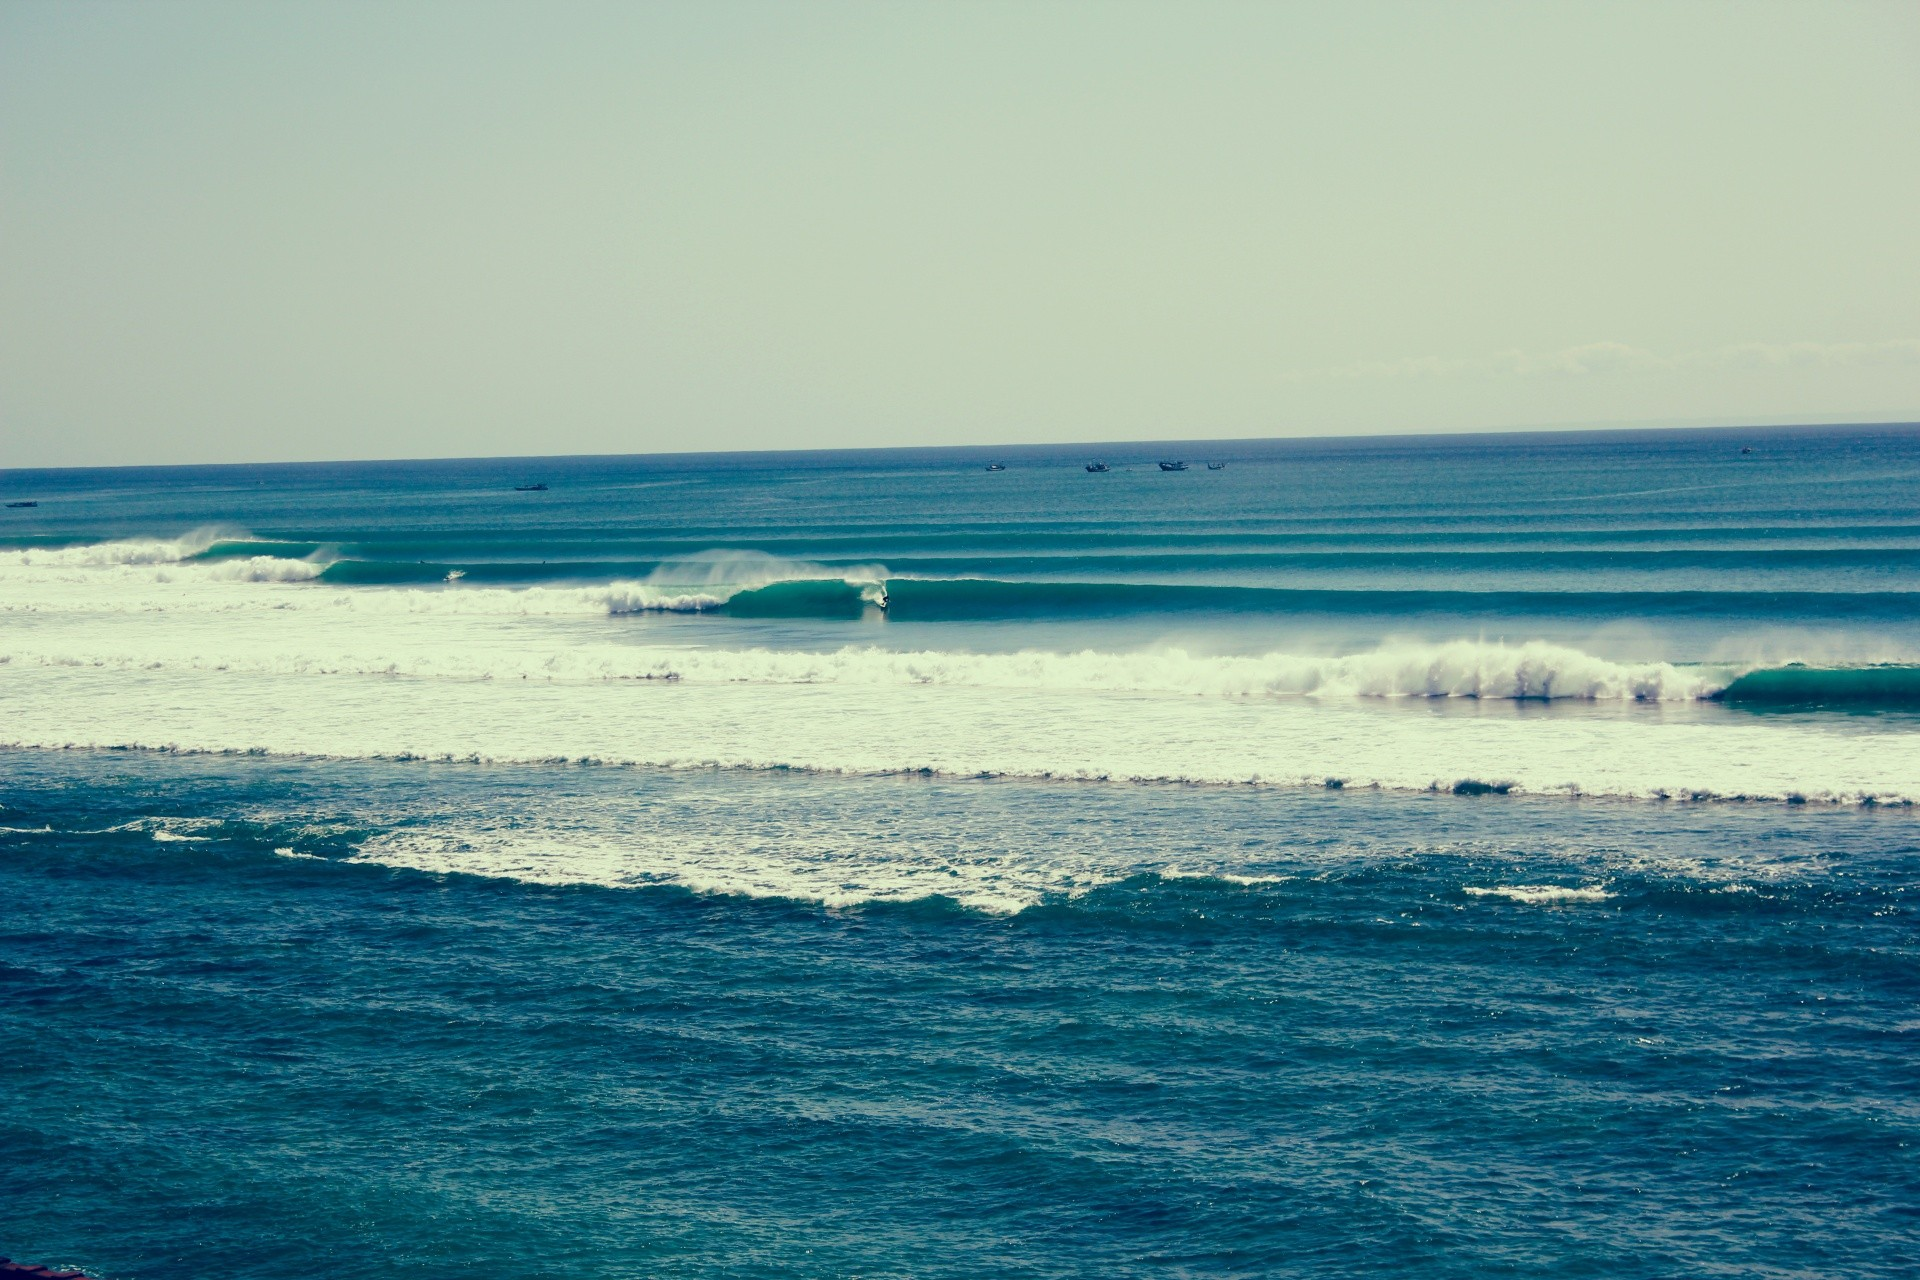 Dan Hunter's photo of Kuta